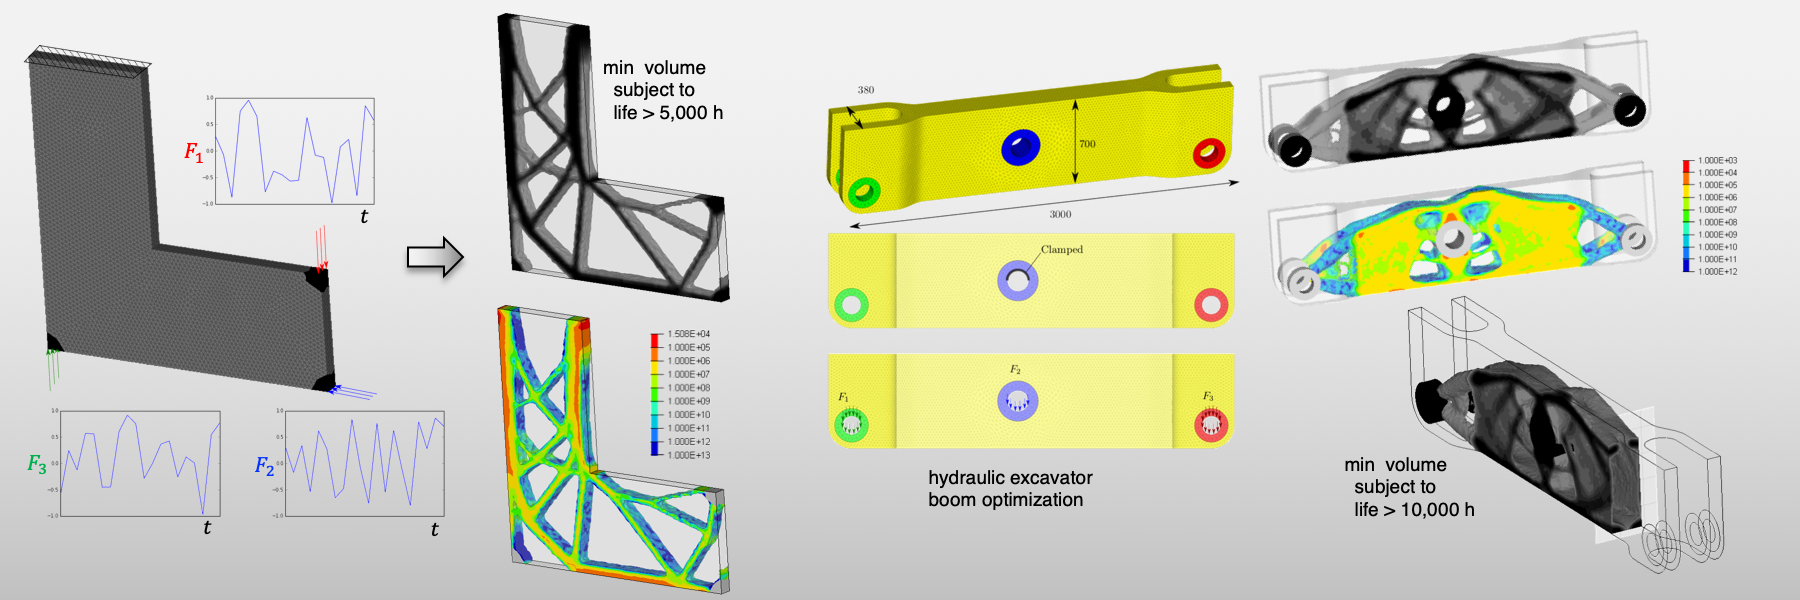 This slide shows two examples: the topology optimization of an L-bracket and a hydraulic excavator boom to minimize volume subject to a constraint on fatigue life.